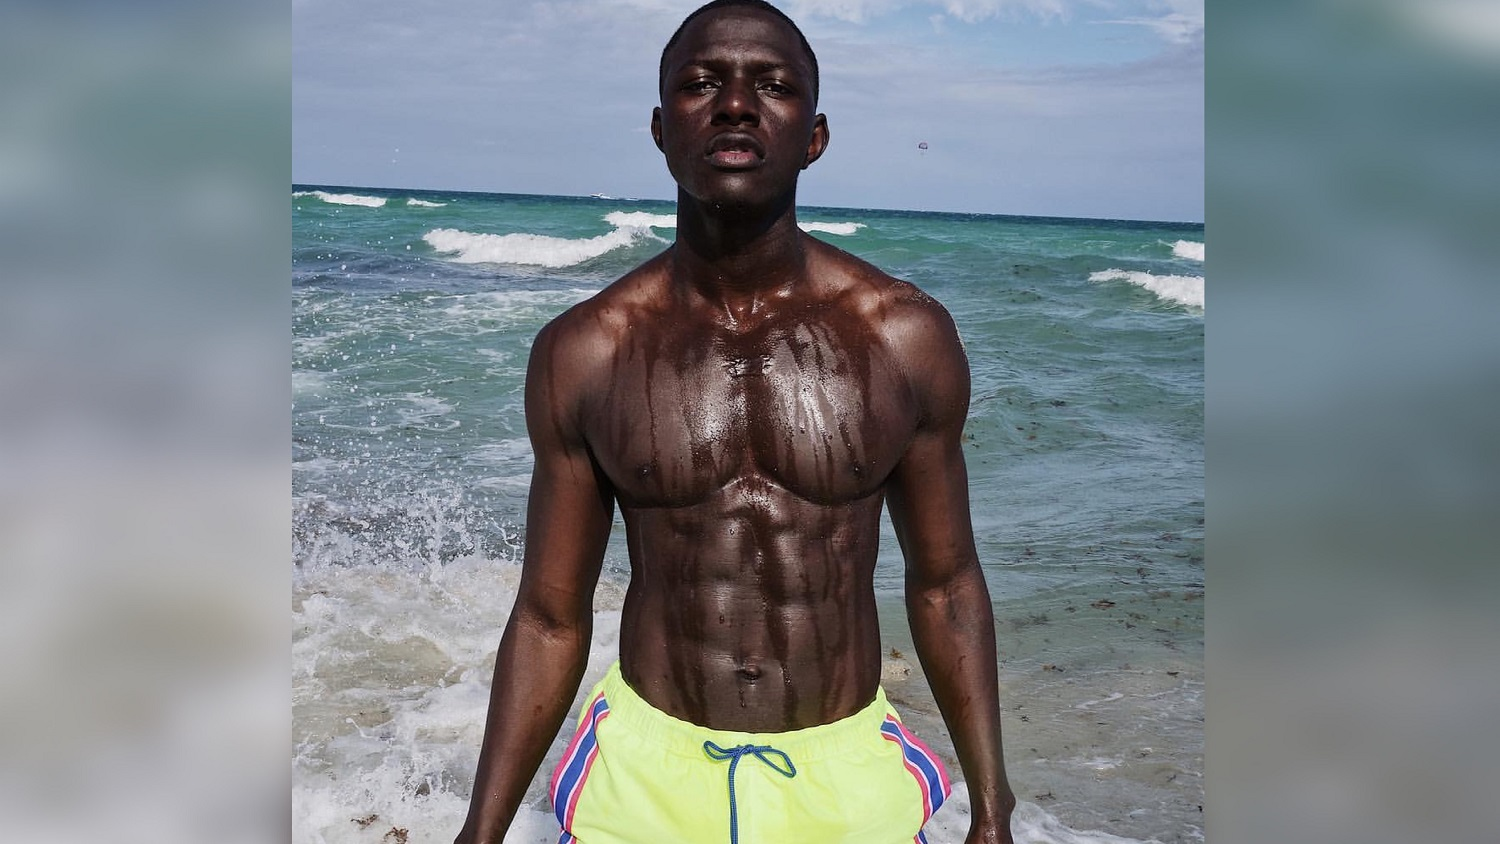 Eye Candy: Model, Fitness Trainer and Youtuber Mohamet Mbaye aka Swaggy Mo